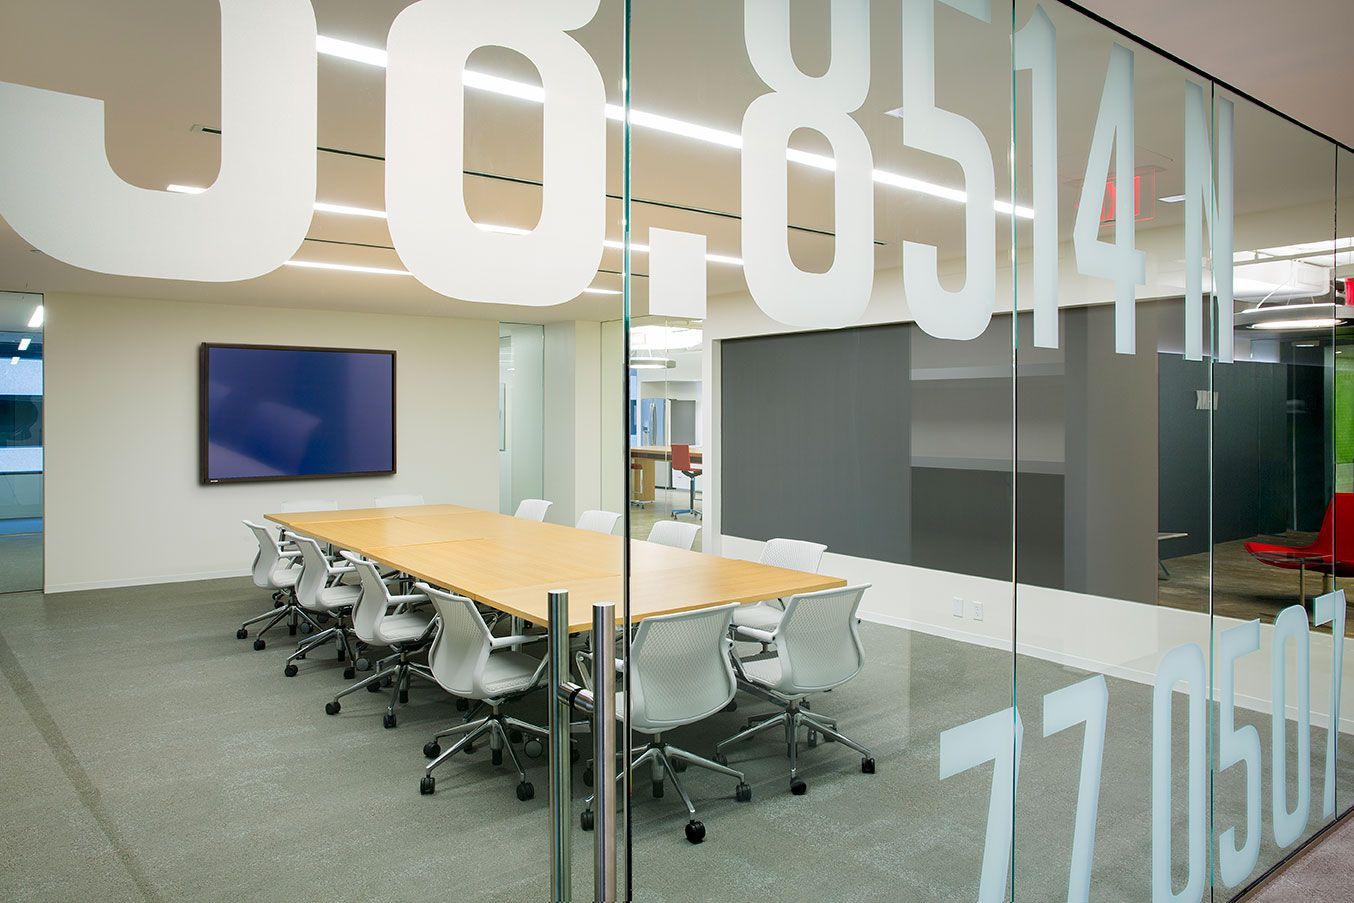 google office environment. Modern Office Open Ceiling - Google Search Environment